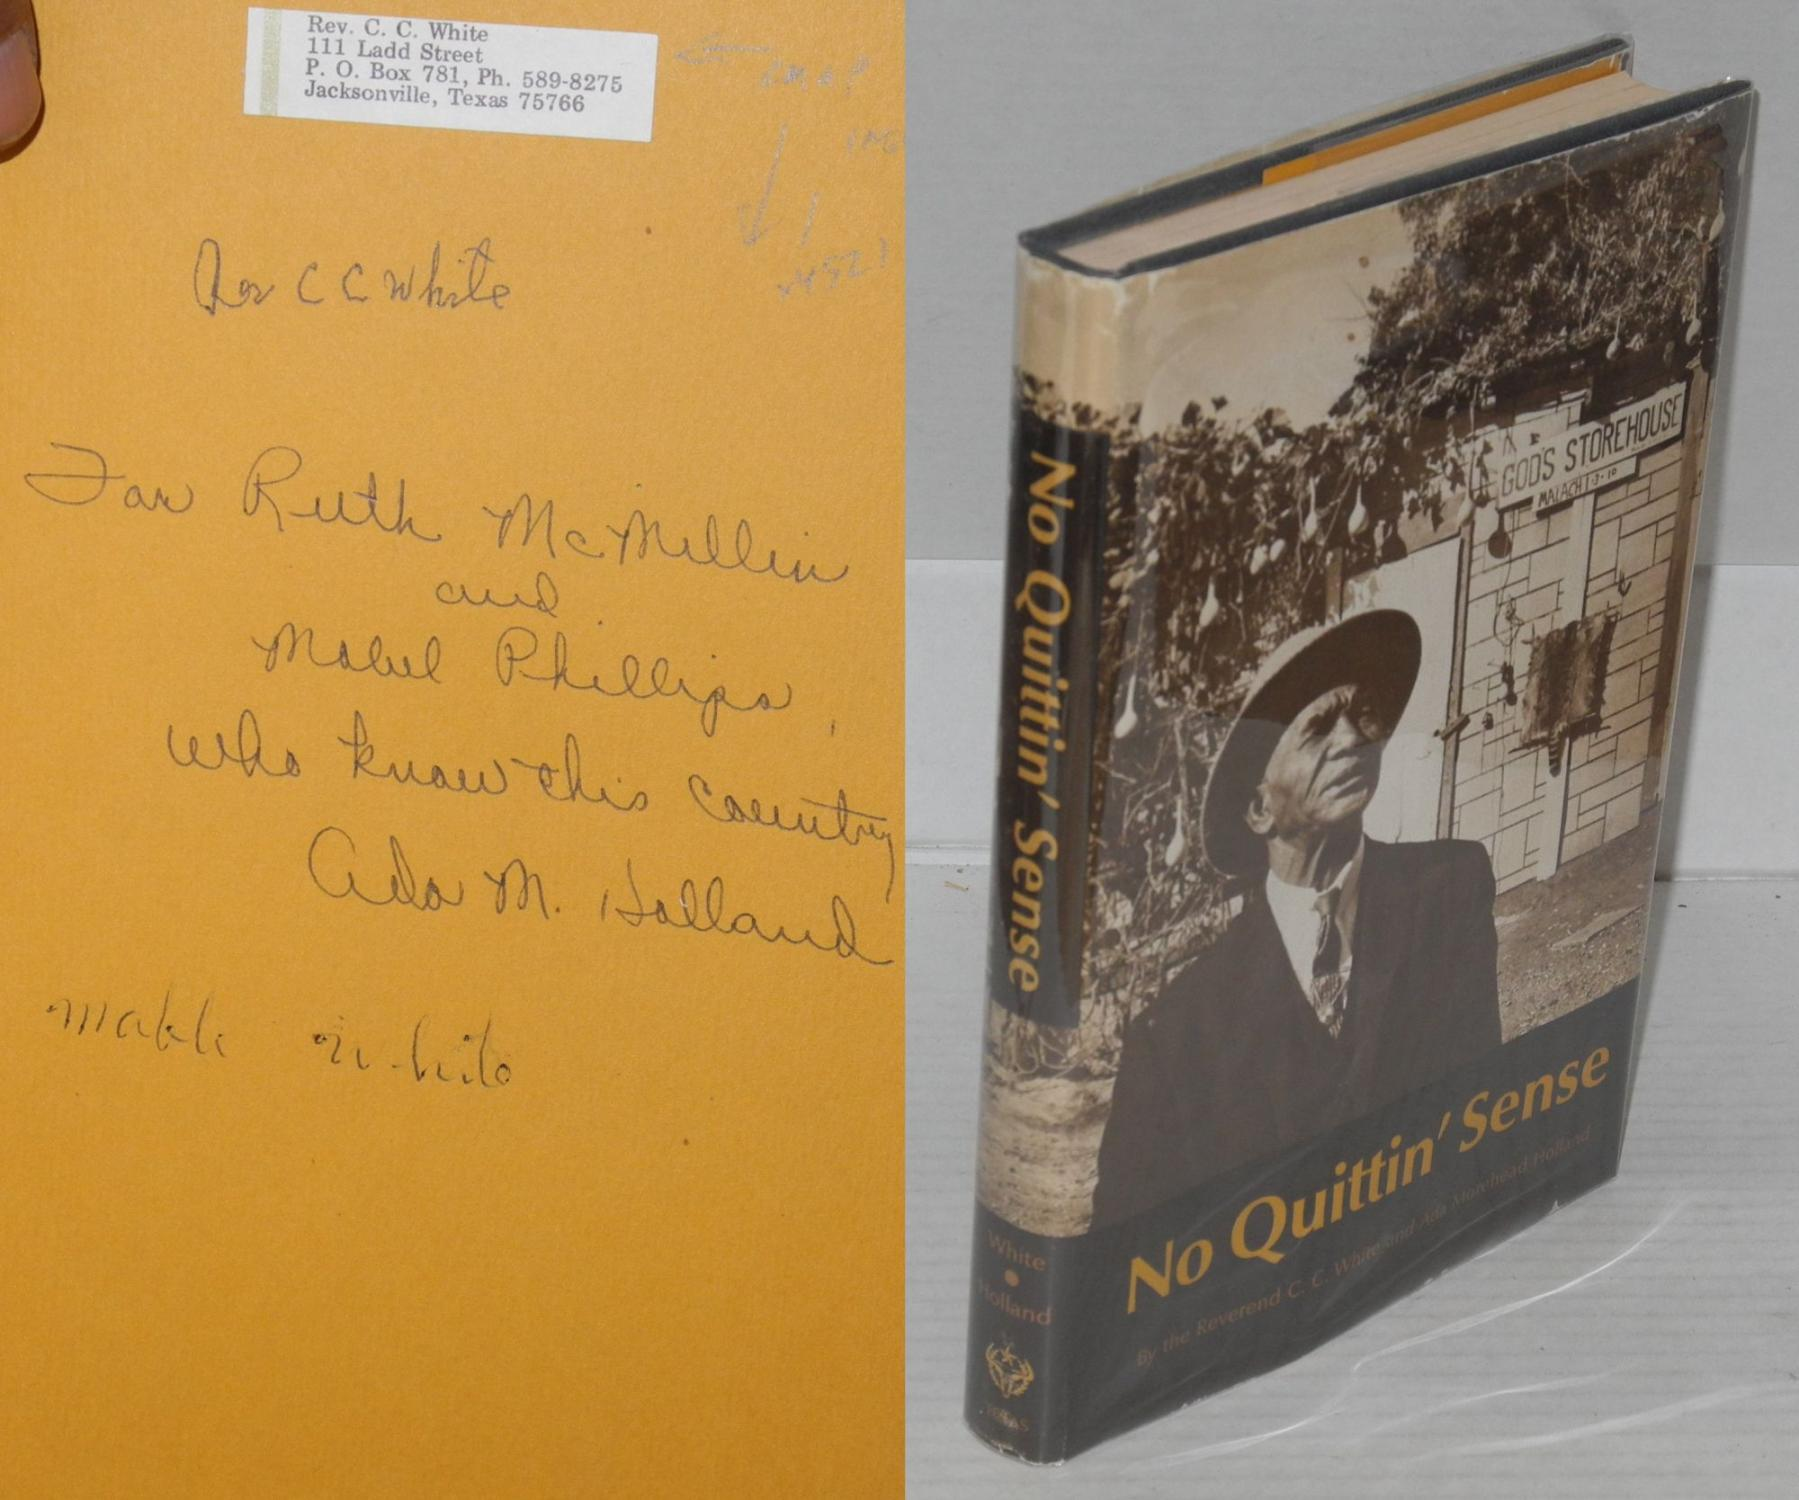 No quittin' sense White, C.C. and Ada Morehead Holland Hardcover xiv, 216p., signed by C.C. White with his address sticker and signed by his wife Mabel White on front blank end paper, also inscribed and signed by Ho